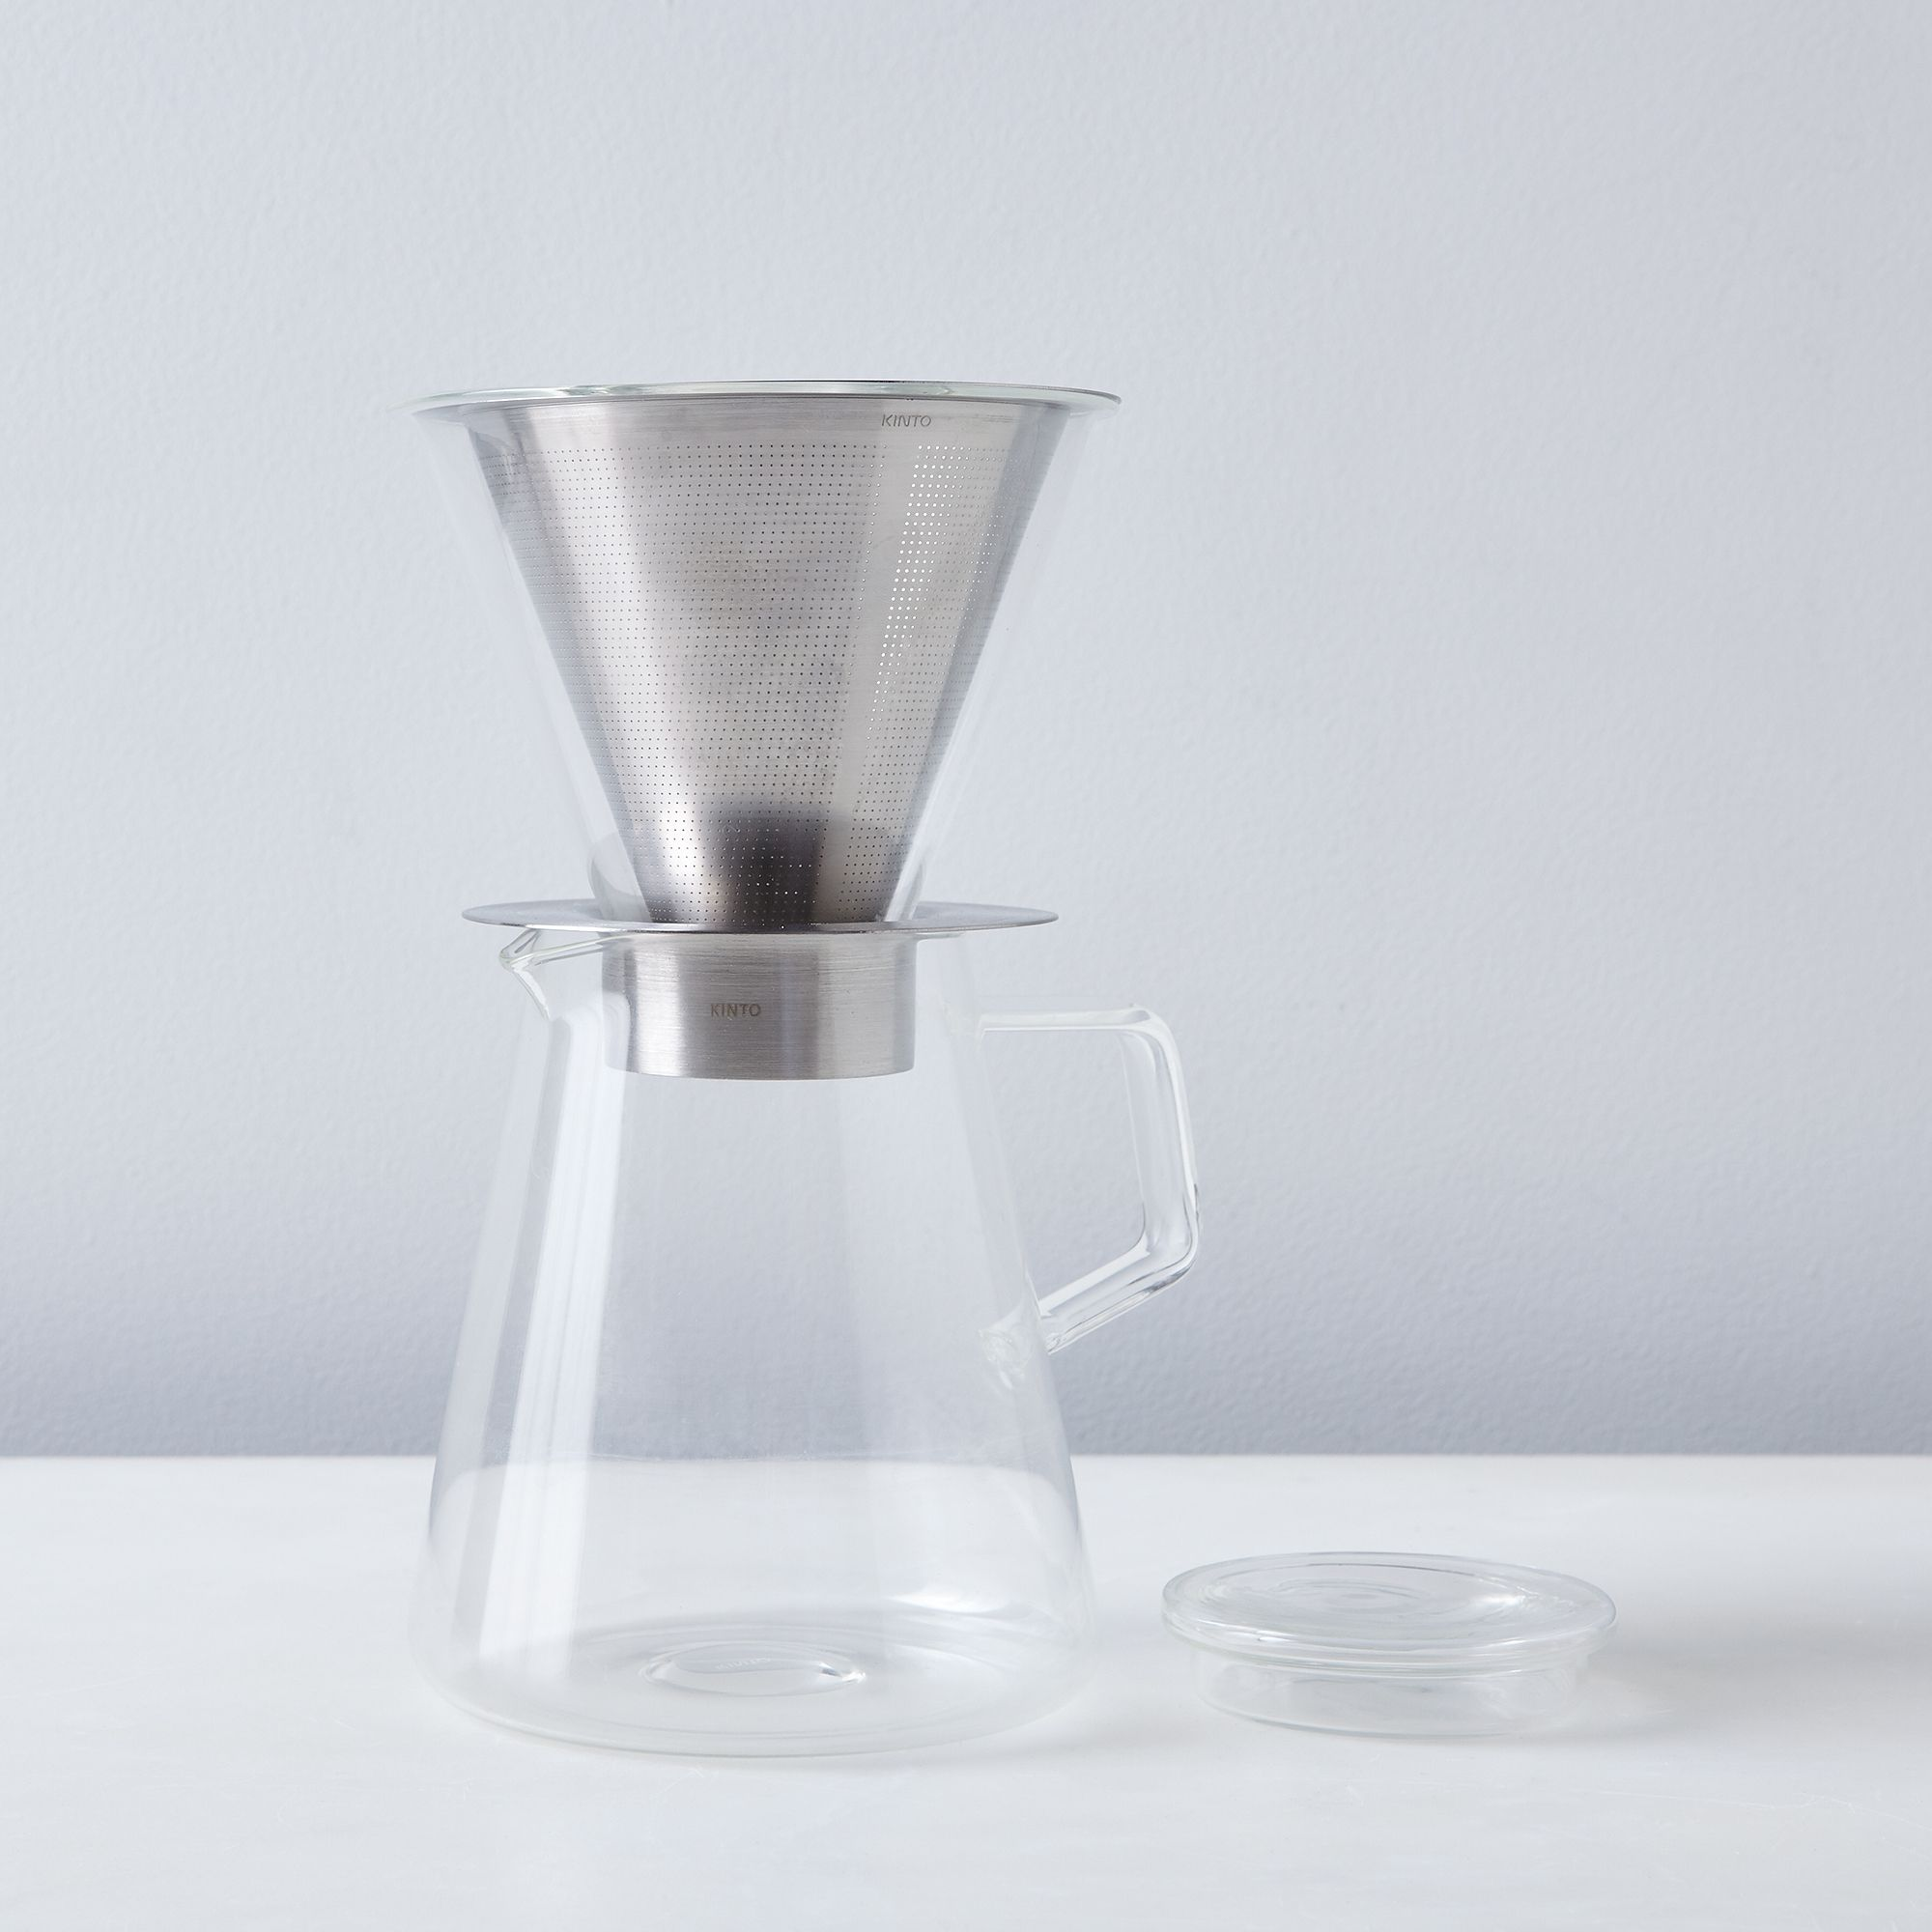 81a4b267 e01f 4567 87c2 81207bf2ff66  2016 0610 kinto coffee dripper and pot silo rocky luten 024